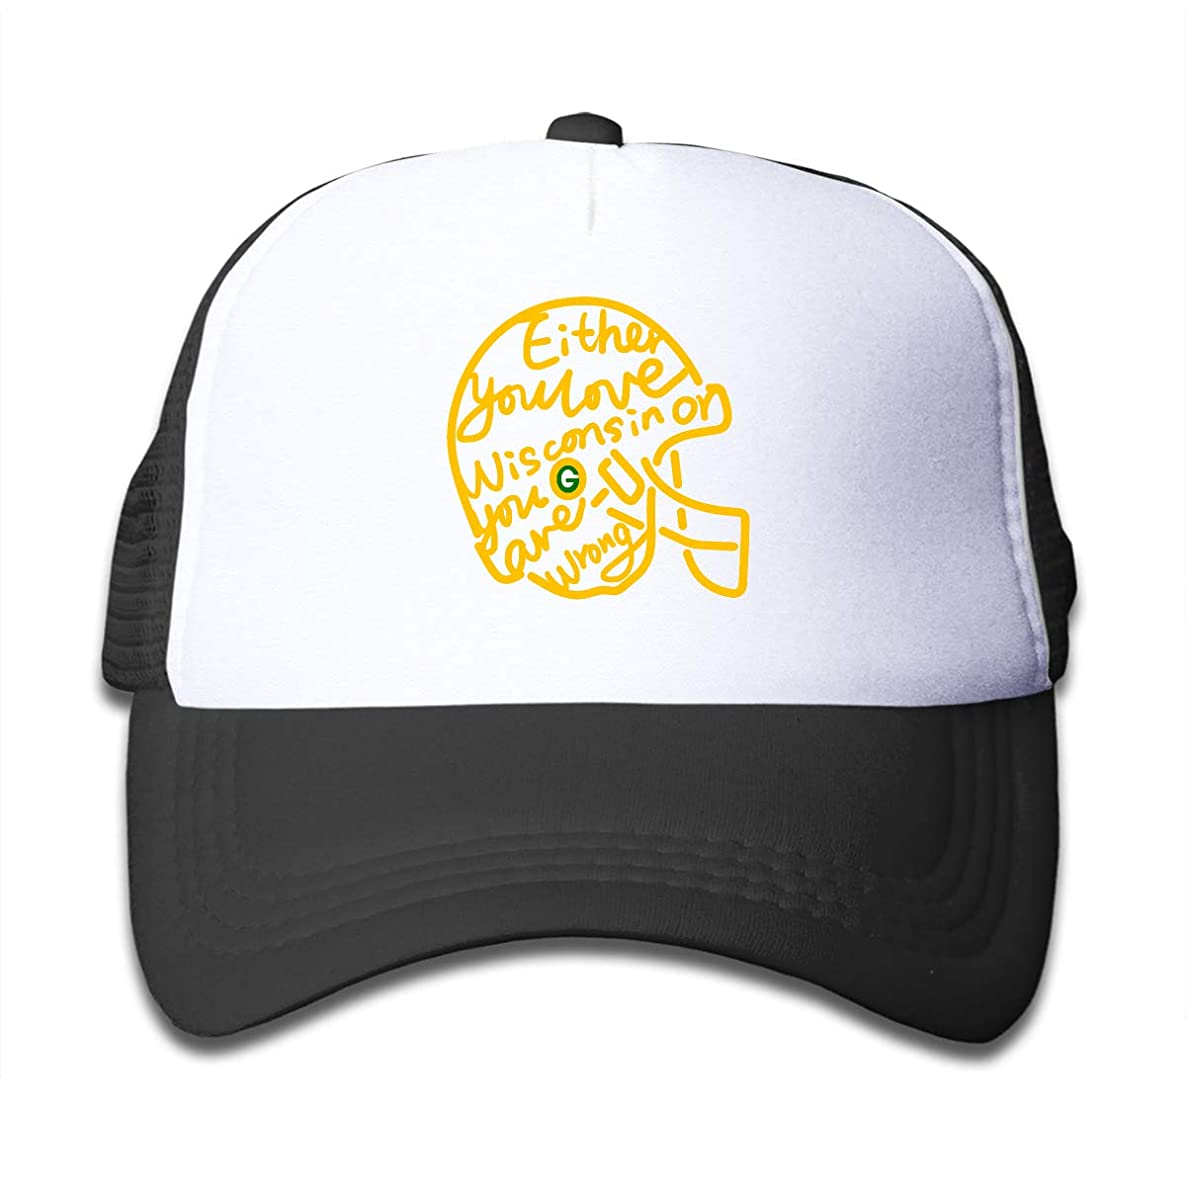 Either You Love Wisconsin or You are Wrong Children's Sun Protection,Summer Adjustable Mesh Hat Cap Black